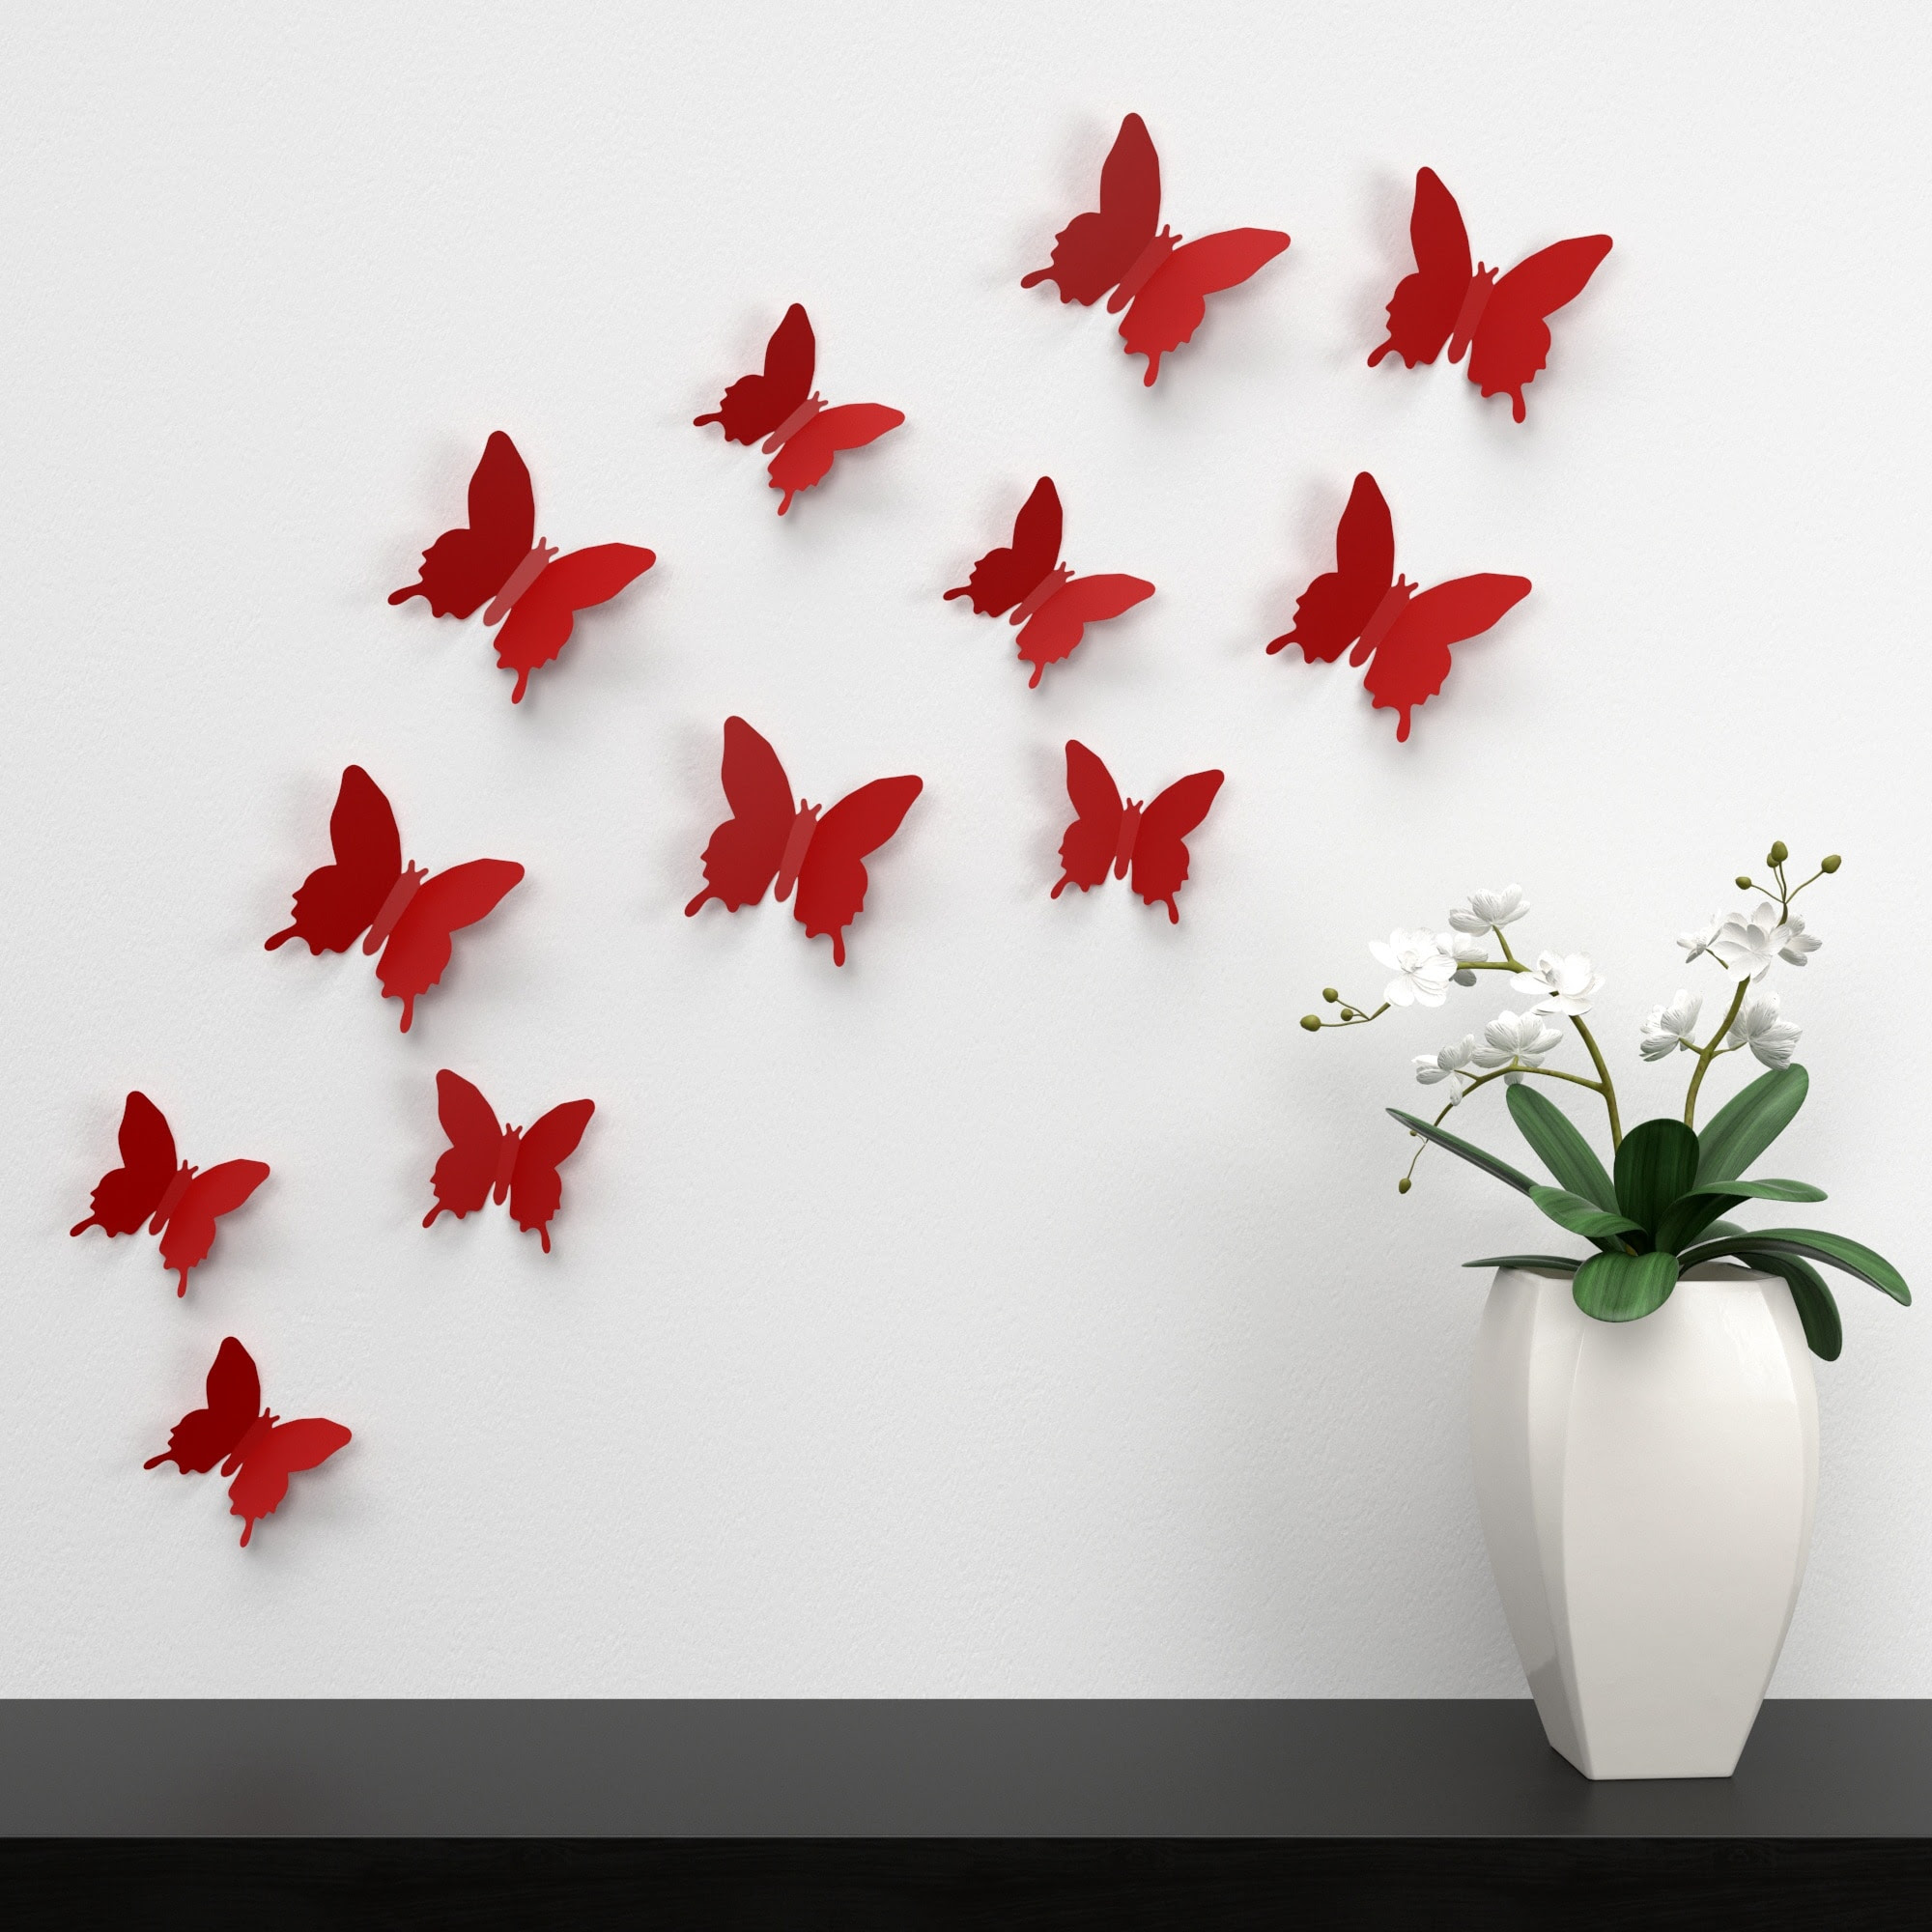 Red Butterfly Wall Decor Lot Free Image Peakpx